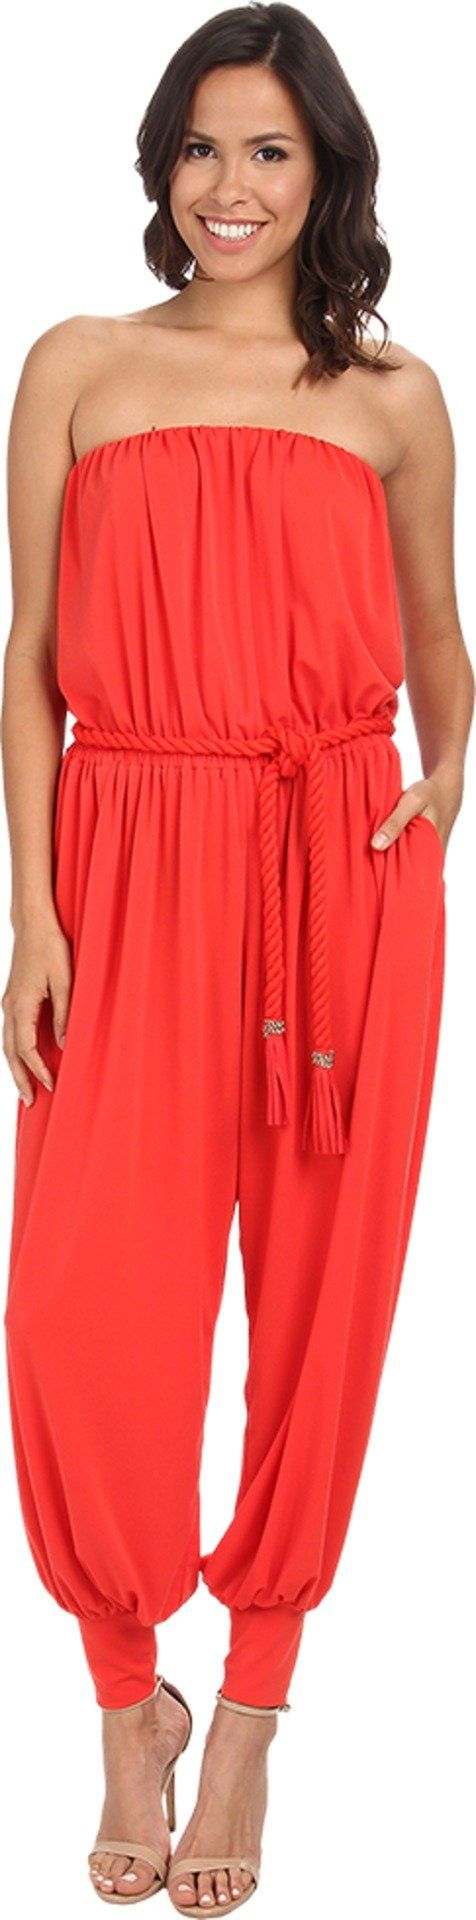 Rachel Zoe Women's Josephine Jumpsuit Red Orange Jumpsuit 2. Draped jersey jumpsuit in a vibrant solid hue. Strapless elastic neckline. Elastic waist defines your figure. Rope tie with tassel trim ties the waist. Dual hand pockets. Harem-style pants with wide elastic cuffs for an elevated style. 95% polyester, 5% spandex. Dry clean only.